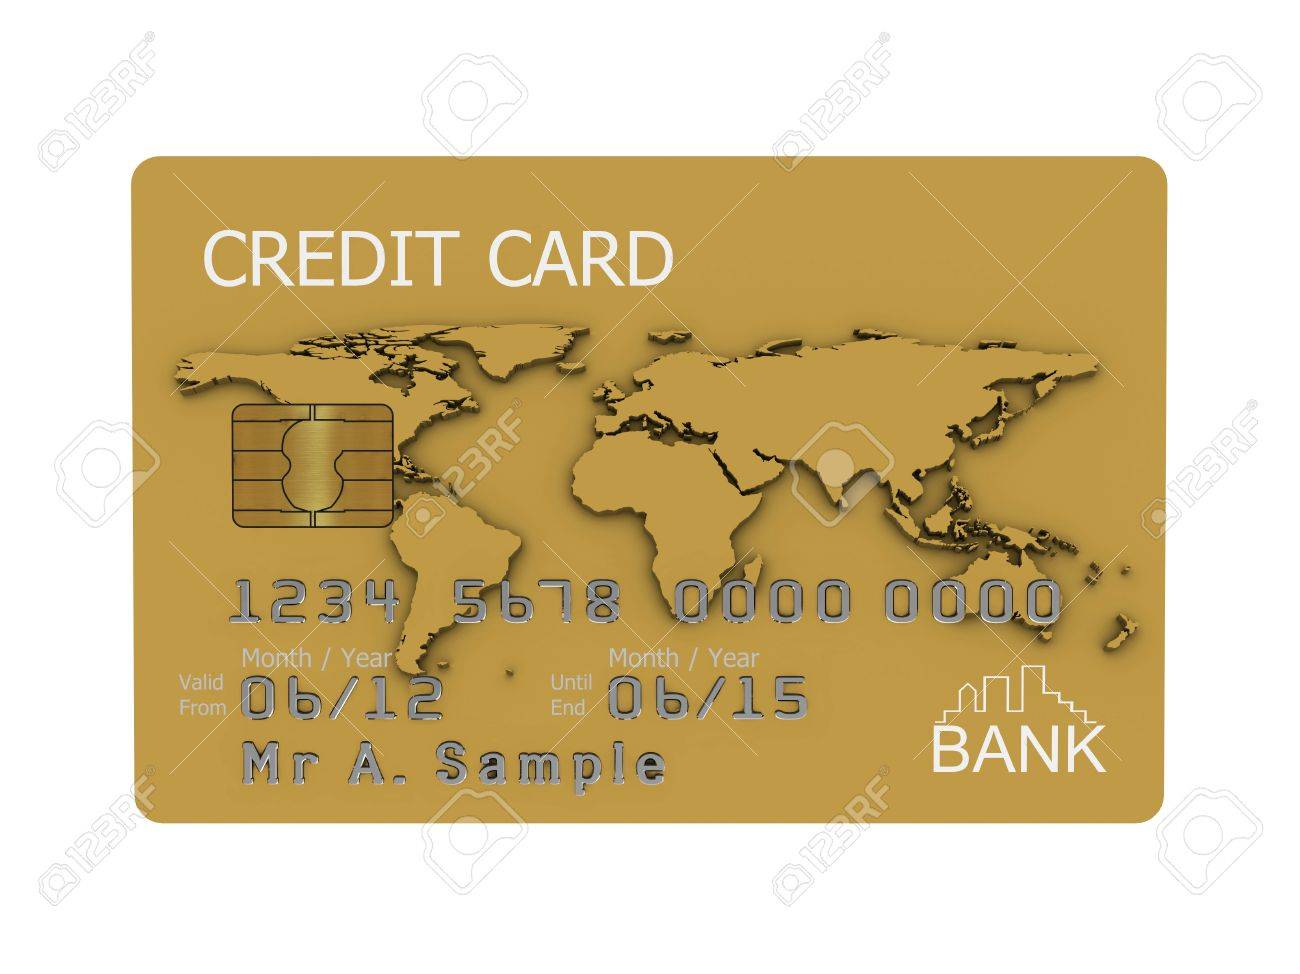 Realistic illustration of a gold credit card with fictional details, isolated on a white background. Stock Photo - 8238786